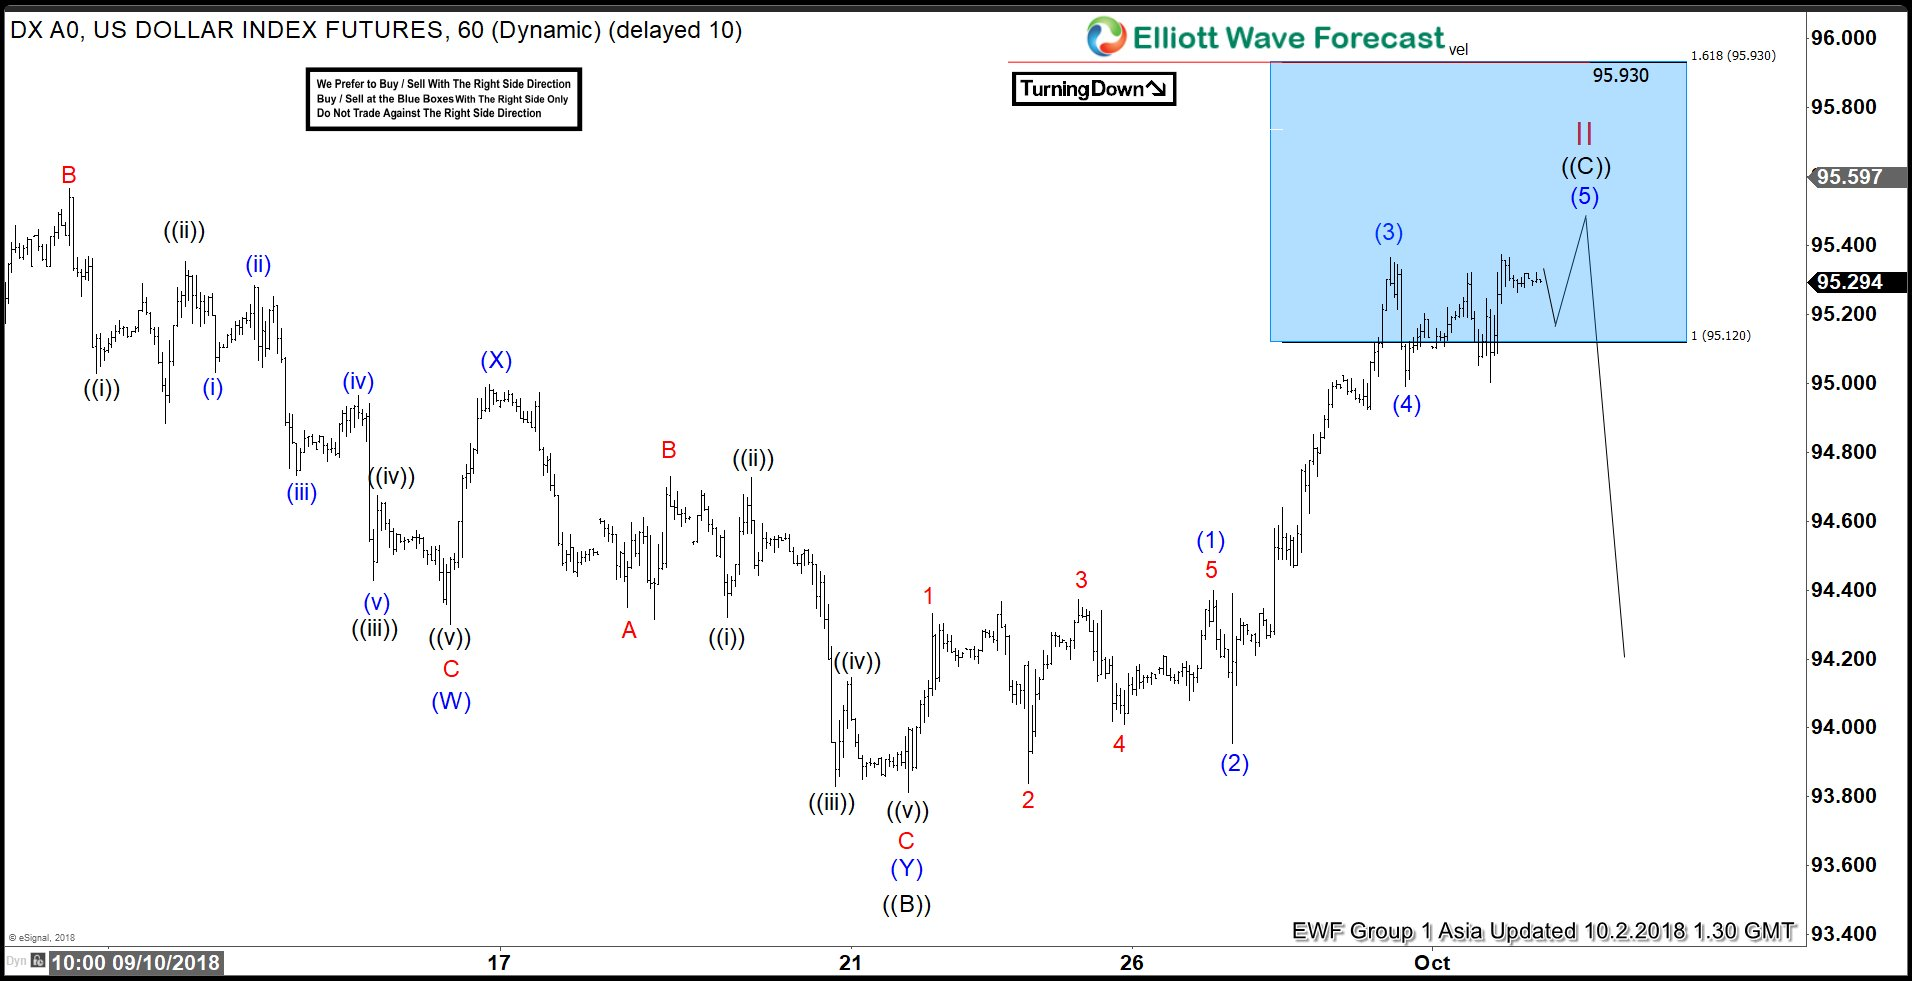 DXY Ending The Elliott Wave Flat Correction